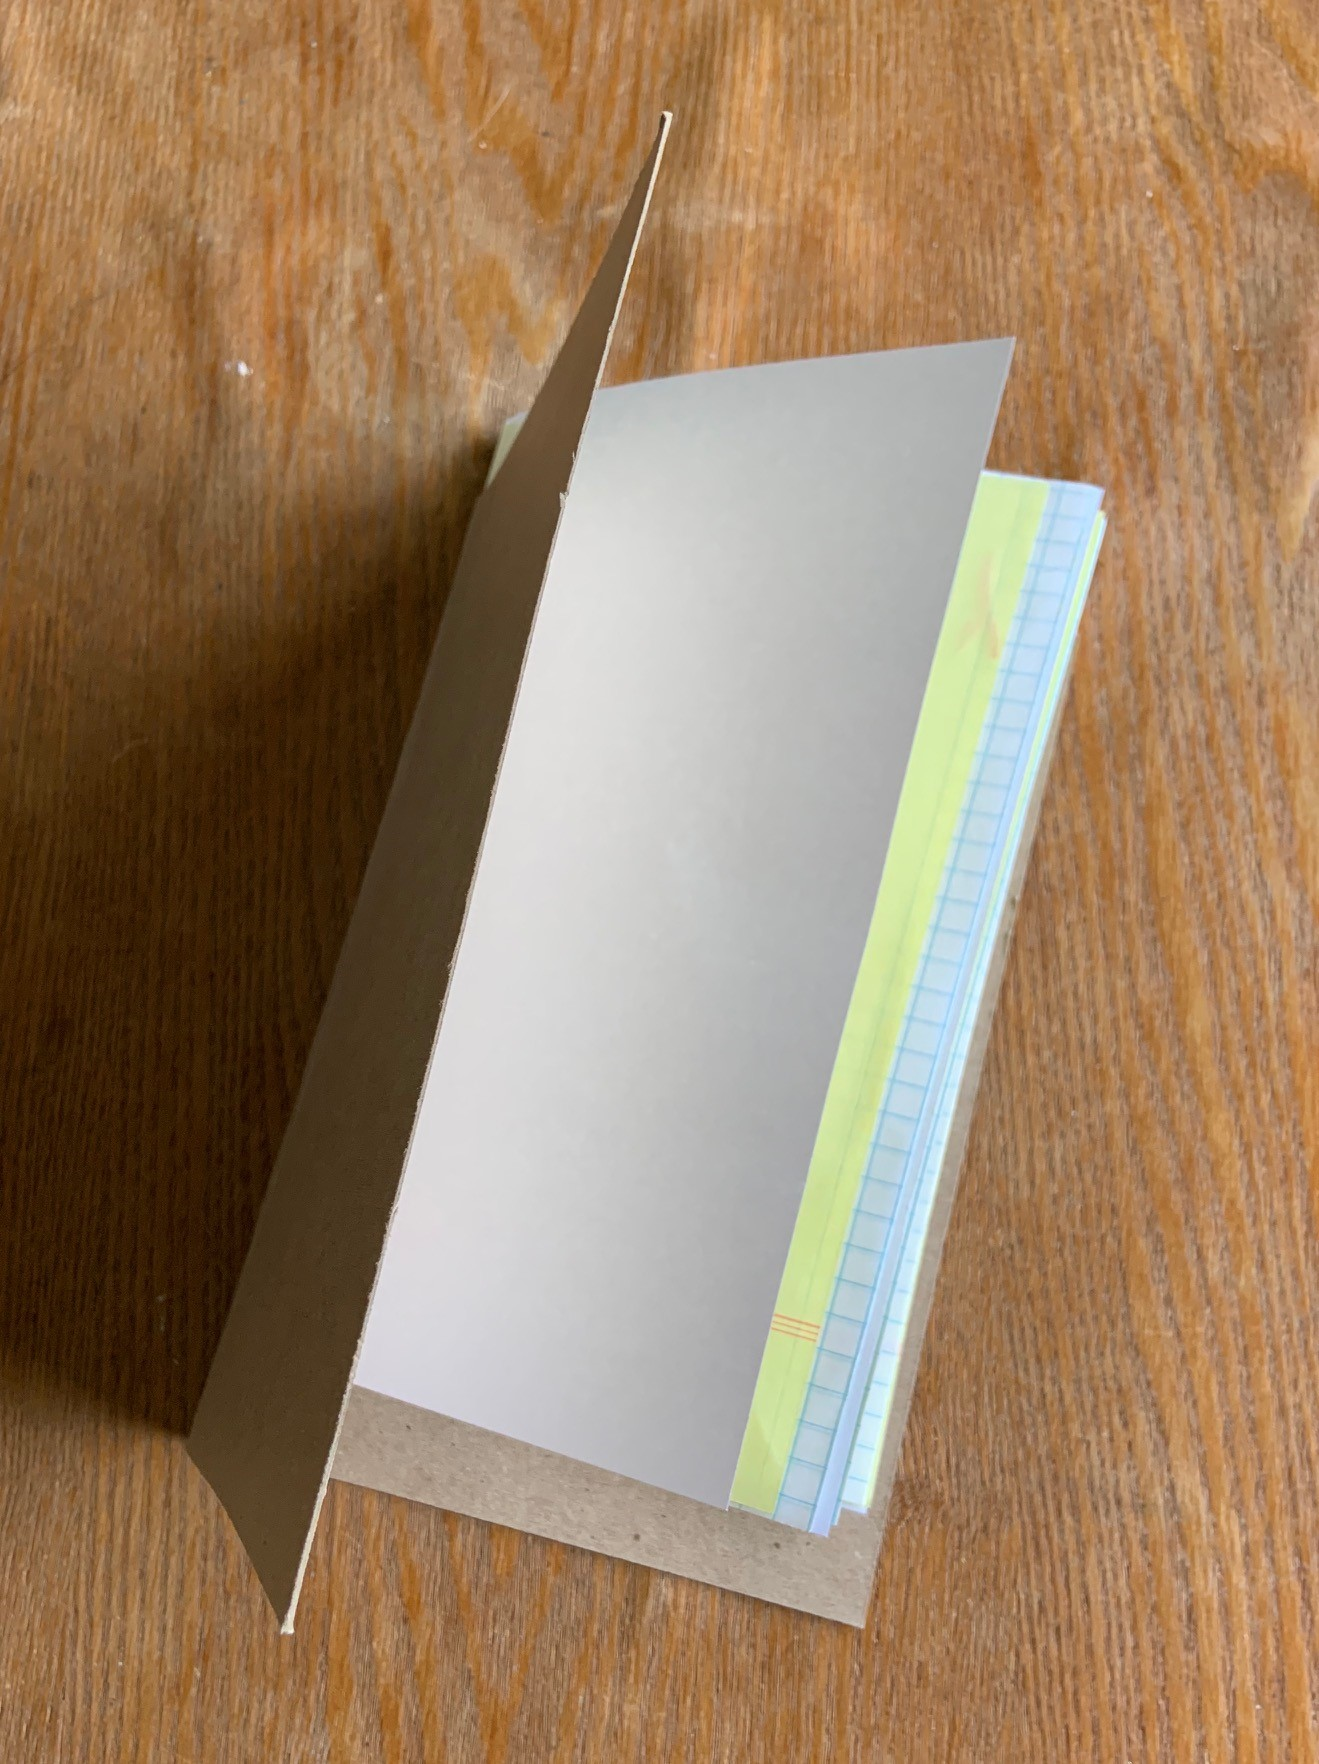 Different types of paper folded in half together